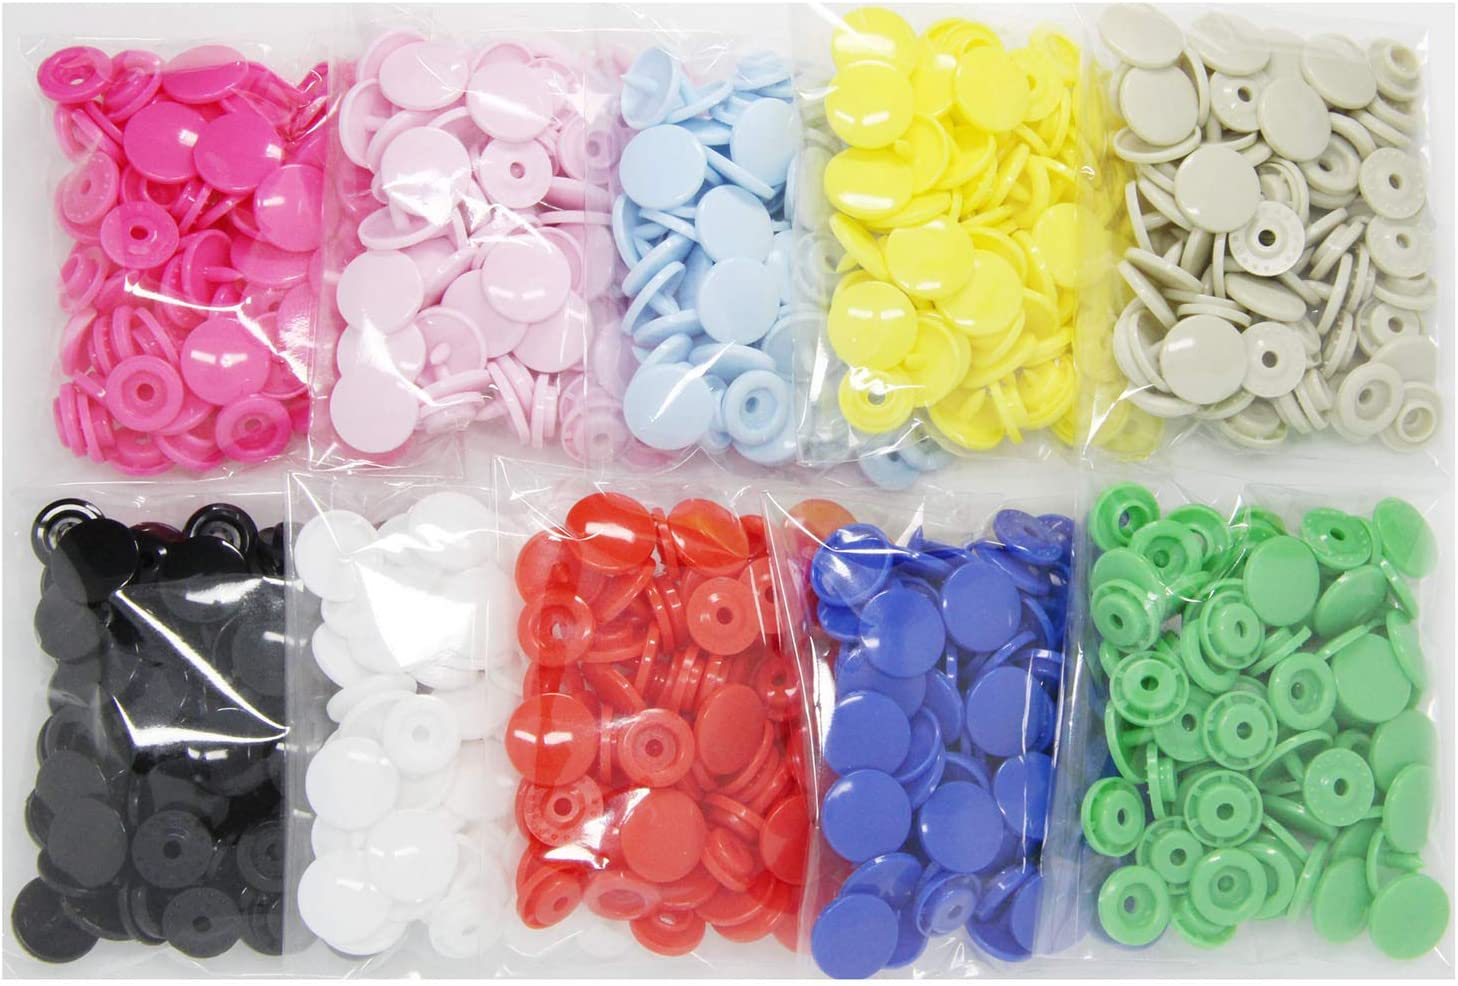 BetterJonny Size 20 T5 Glossy Plastic Resin Fasteners No-Sew Buttons for Baby Clothes Diaper//Bibs//Unpaper Towels//Nappies//Buttons//Mama Pads 150 Sets KAM Snaps Heart Shaped with Storage Box